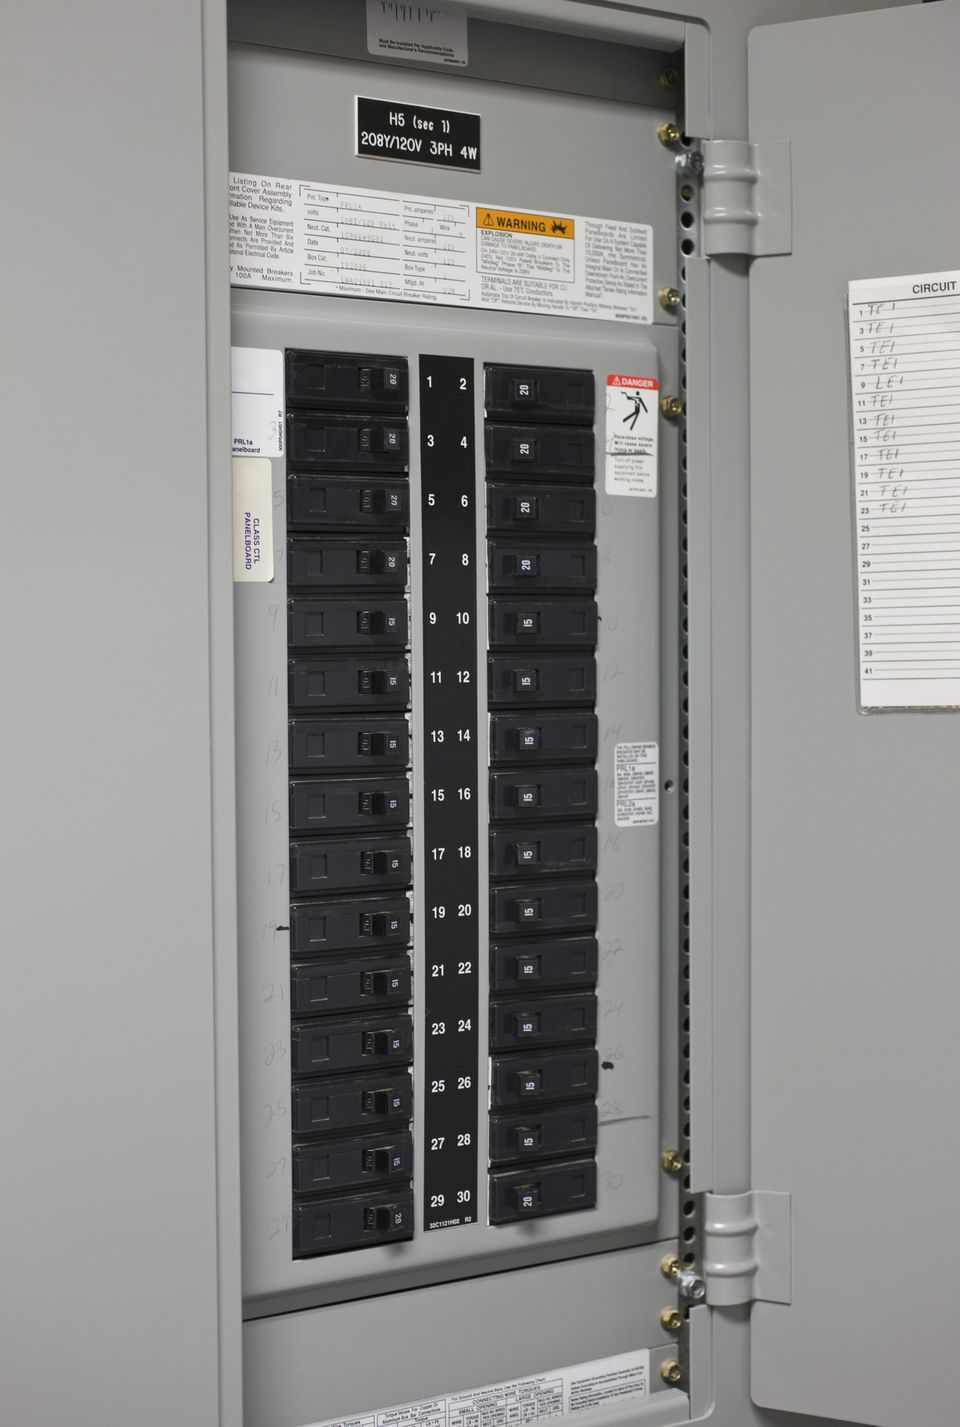 Burnt Circuit Breaker Panel Smart Wiring Diagrams Fuse Box Electrical Safety Checklist Mini Challenger